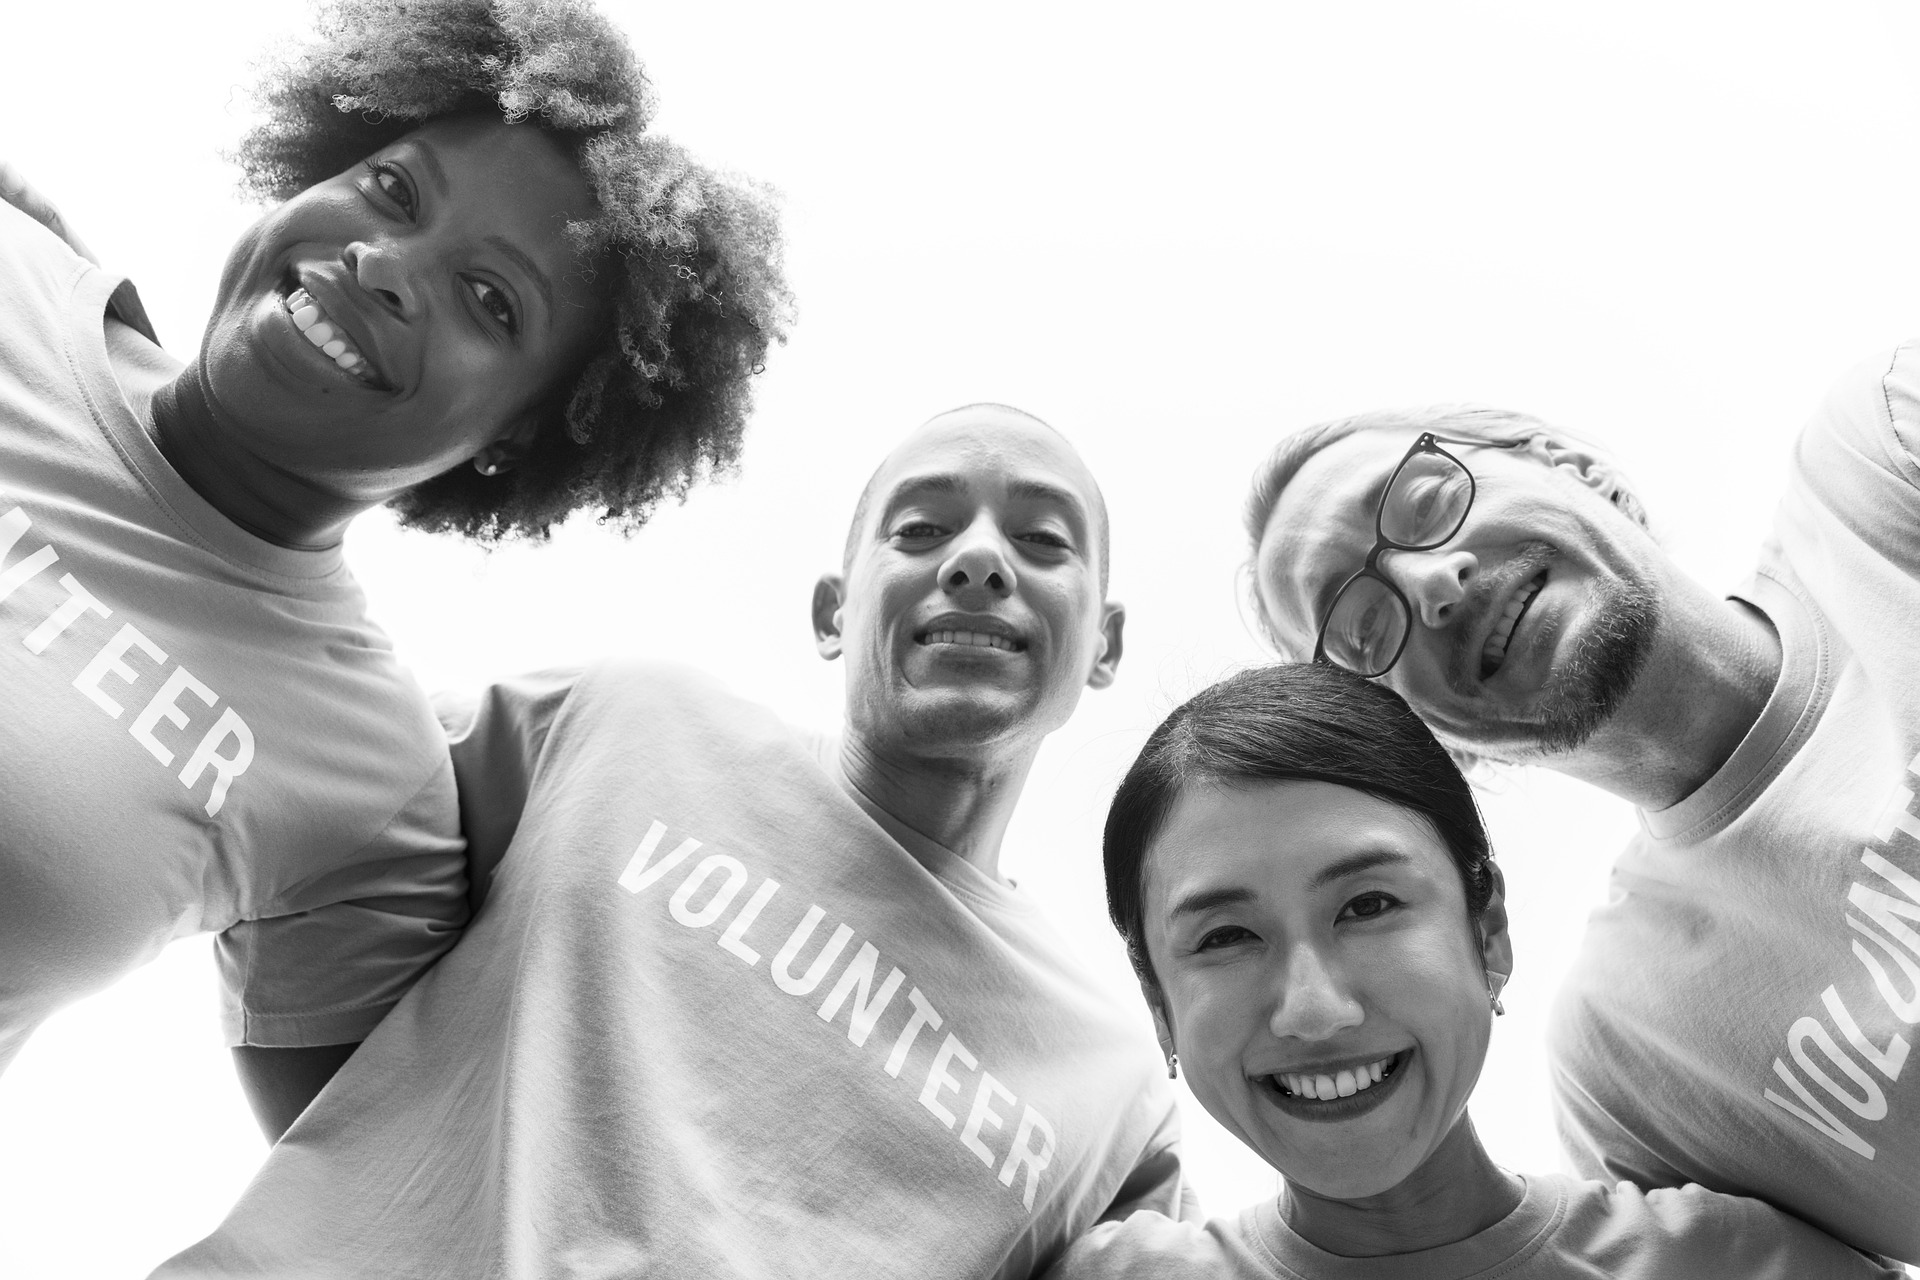 The caring nature of many with Borderline Personality Disorder often leads them to volunteer.